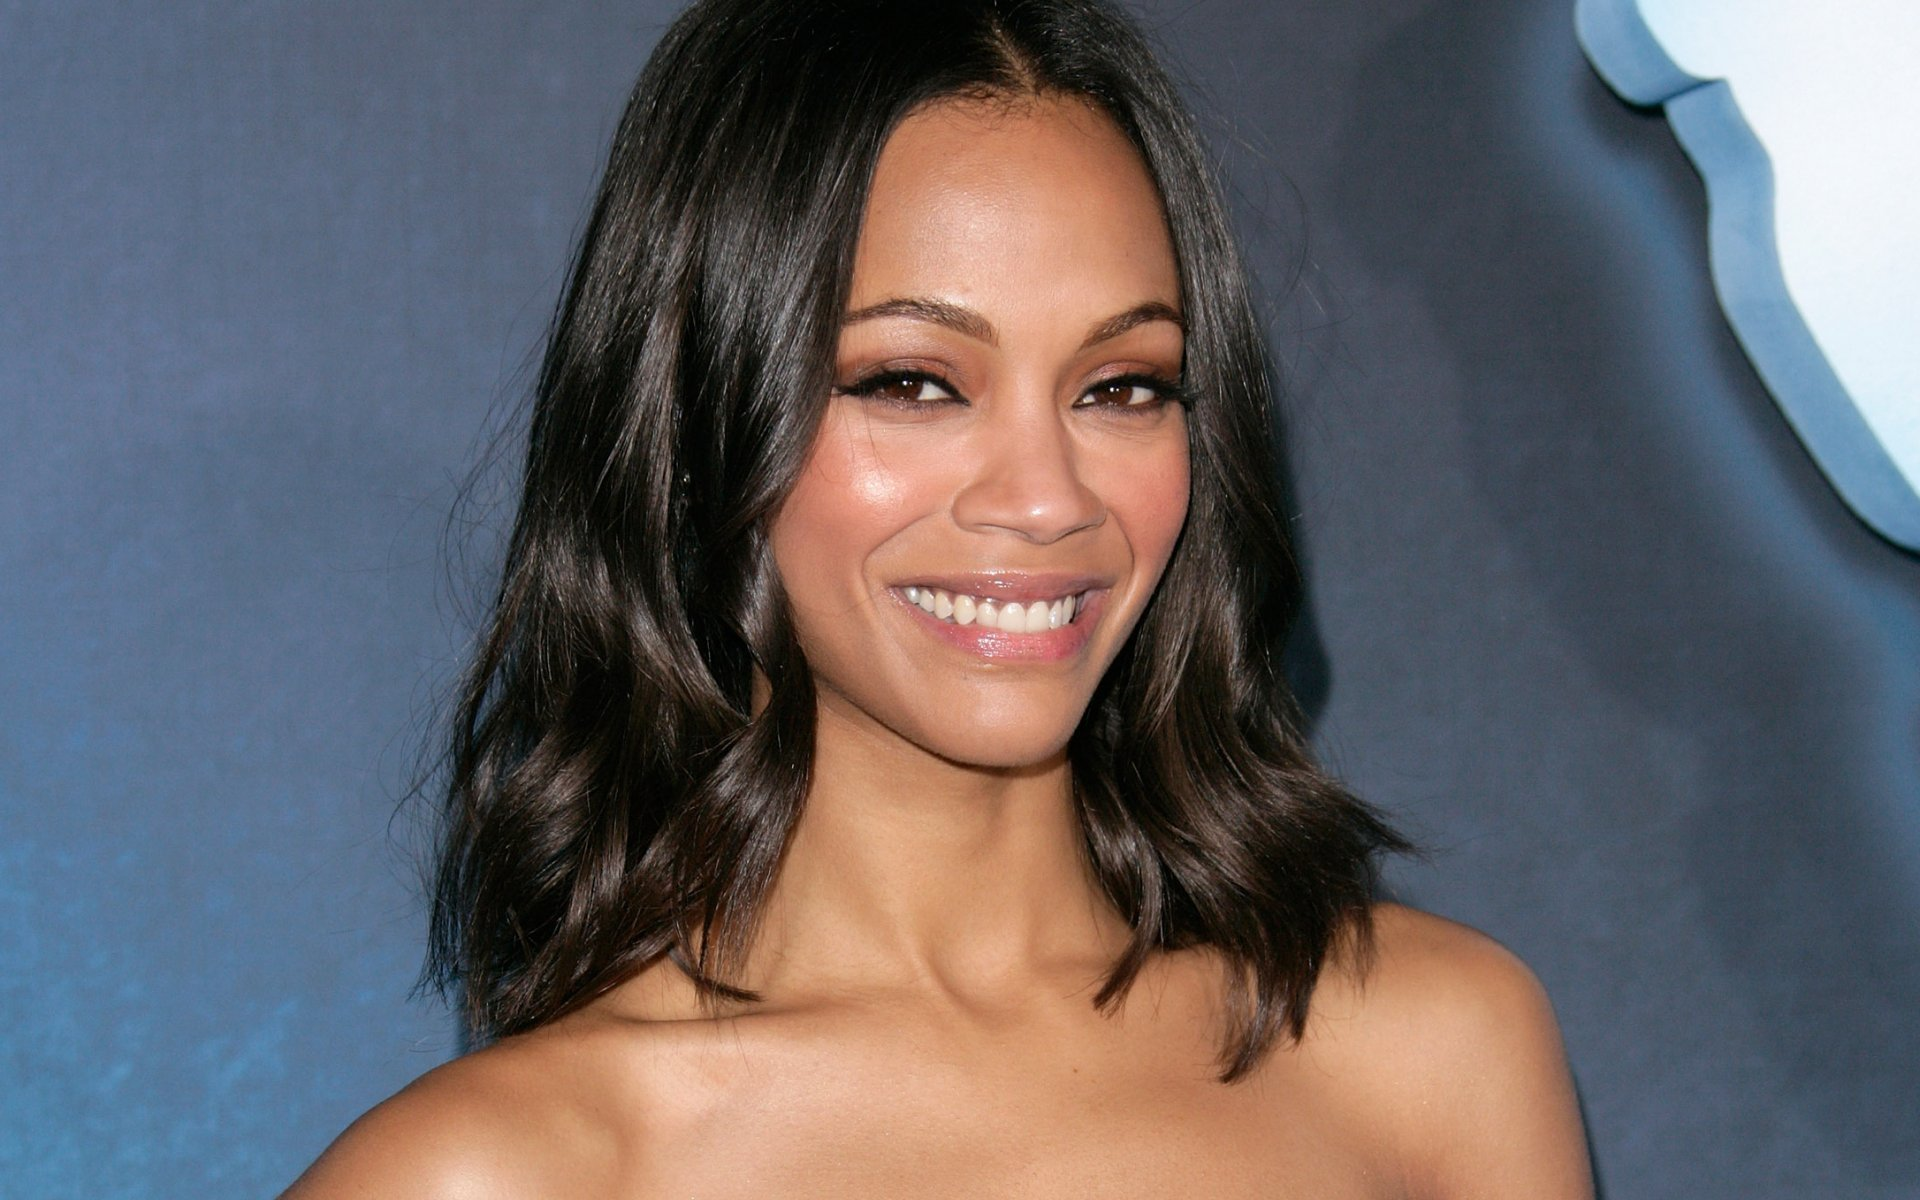 zoe saldana фильмыzoe saldana gif, zoe saldana avatar, zoe saldana 2016, zoe saldana vk, zoe saldana gif hunt, zoe saldana style, zoe saldana фильмы, zoe saldana marco perego, zoe saldana фото, zoe saldana wiki, zoe saldana star trek, zoe saldana movies, zoe saldana hot photo, zoe saldana sisters, zoe saldana legend, zoe saldana кинопоиск, zoe saldana 2017, zoe saldana png, zoe saldana wikipedia, zoe saldana twitter